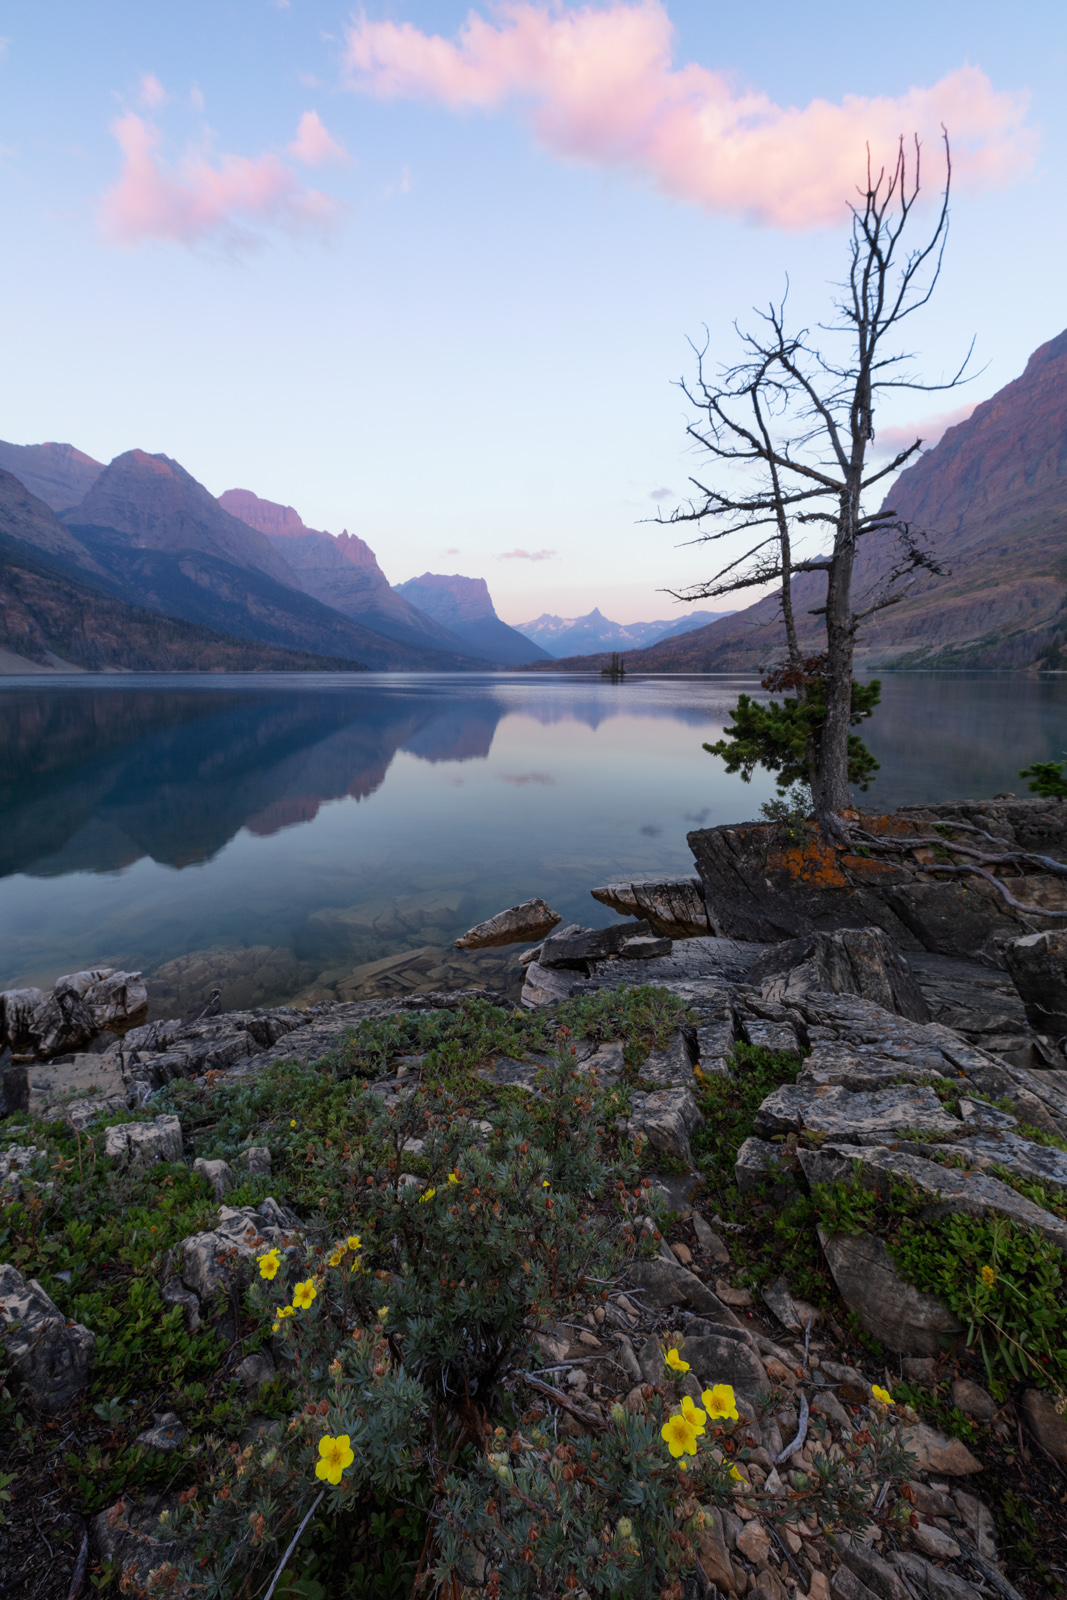 GNP, Glacier National Park, Montana, St Mary Lake, Summer, Wild Goose Island